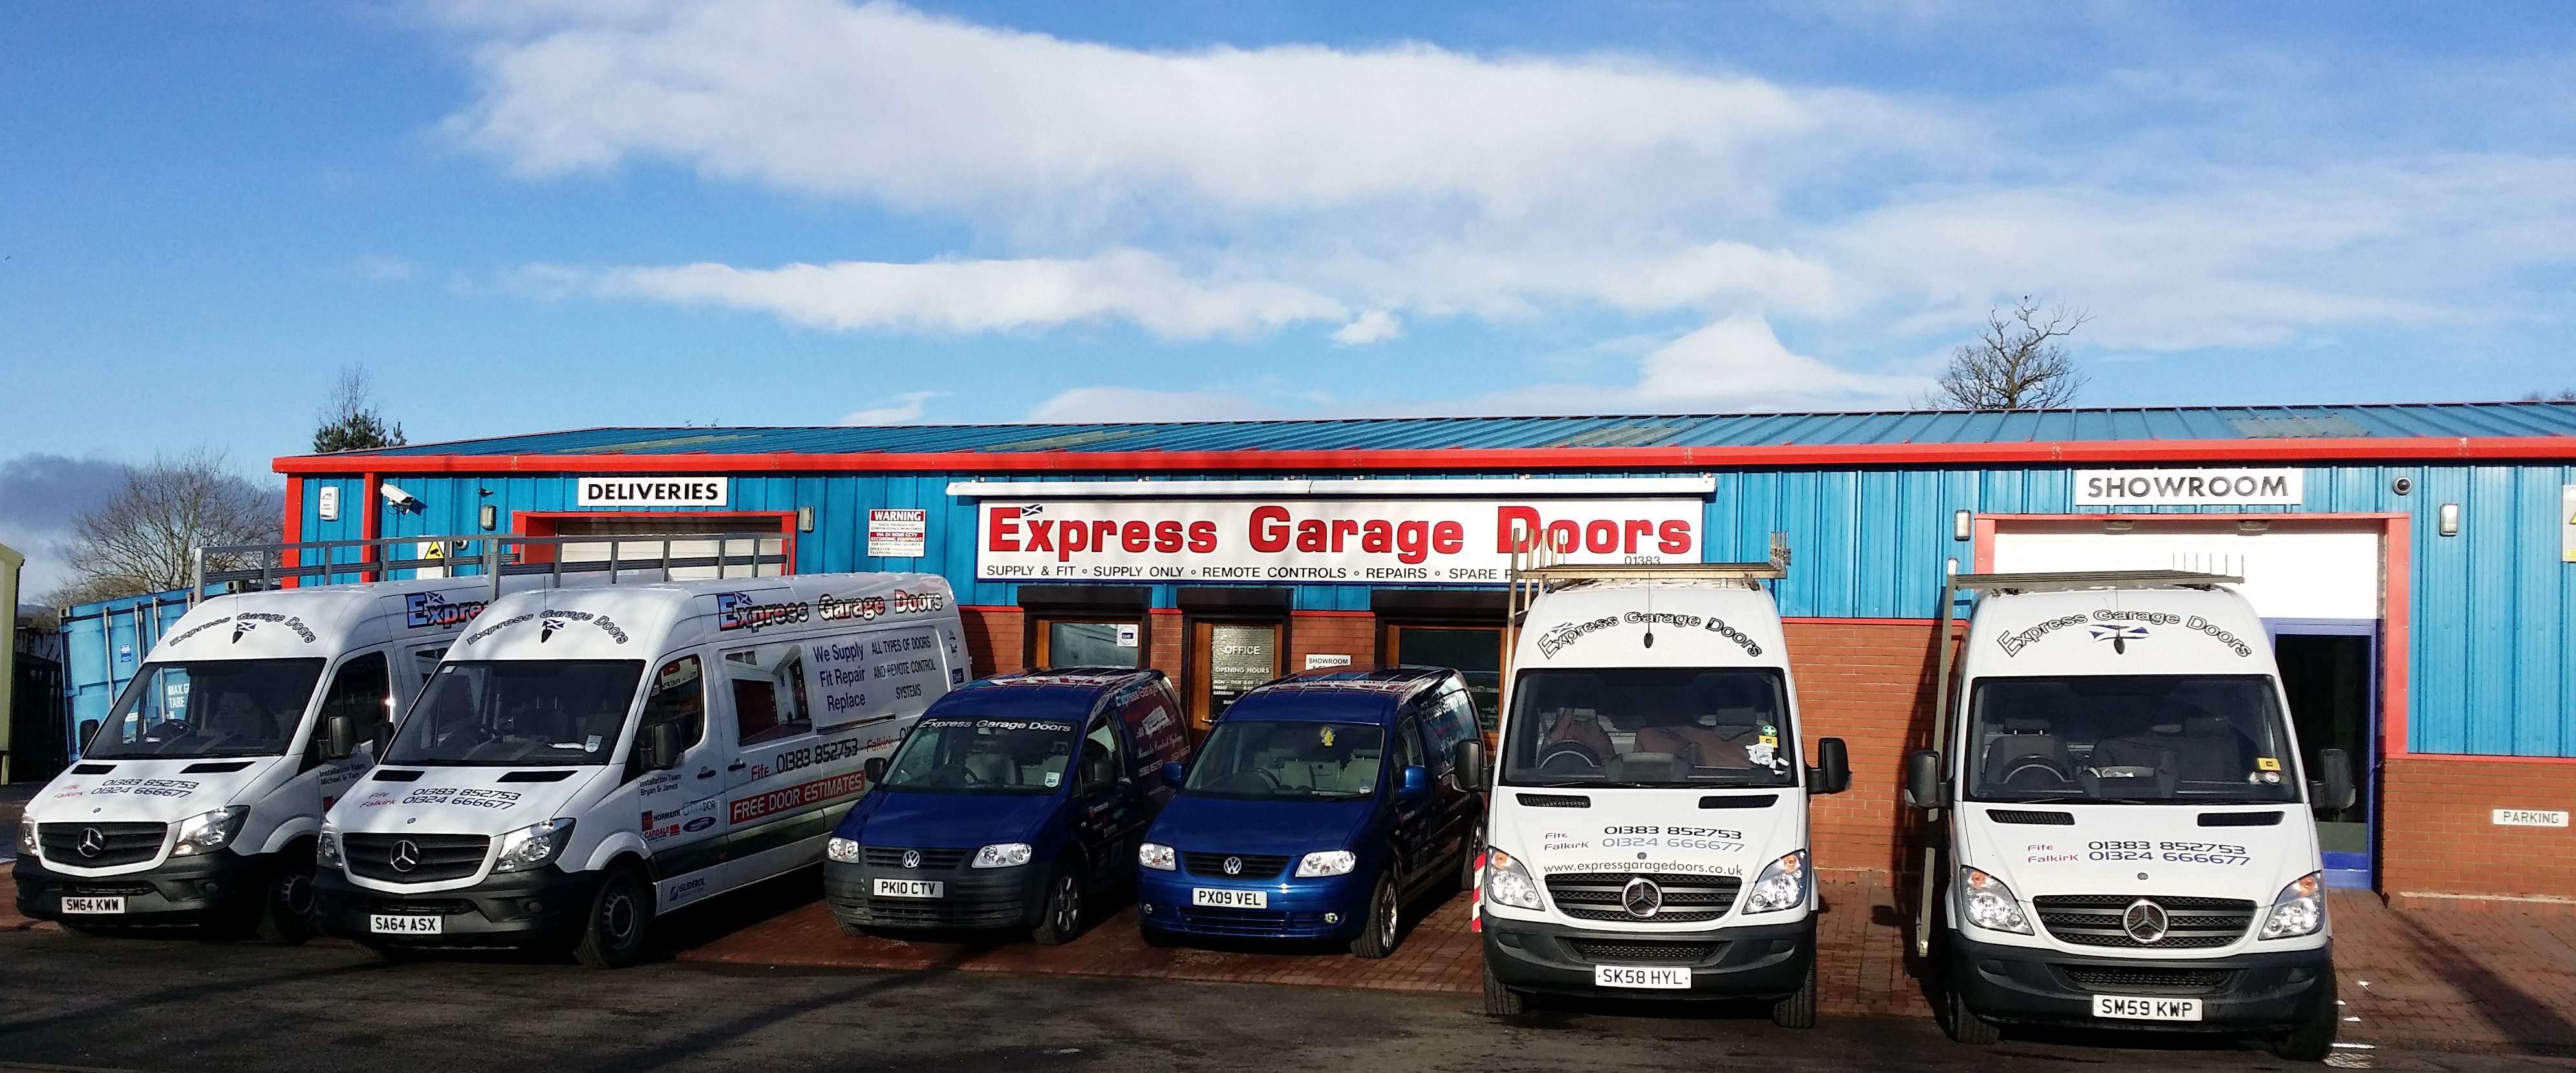 Express Garage Doors - Dunfermline, Fife KY12 9QB - 01383 852753 | ShowMeLocal.com